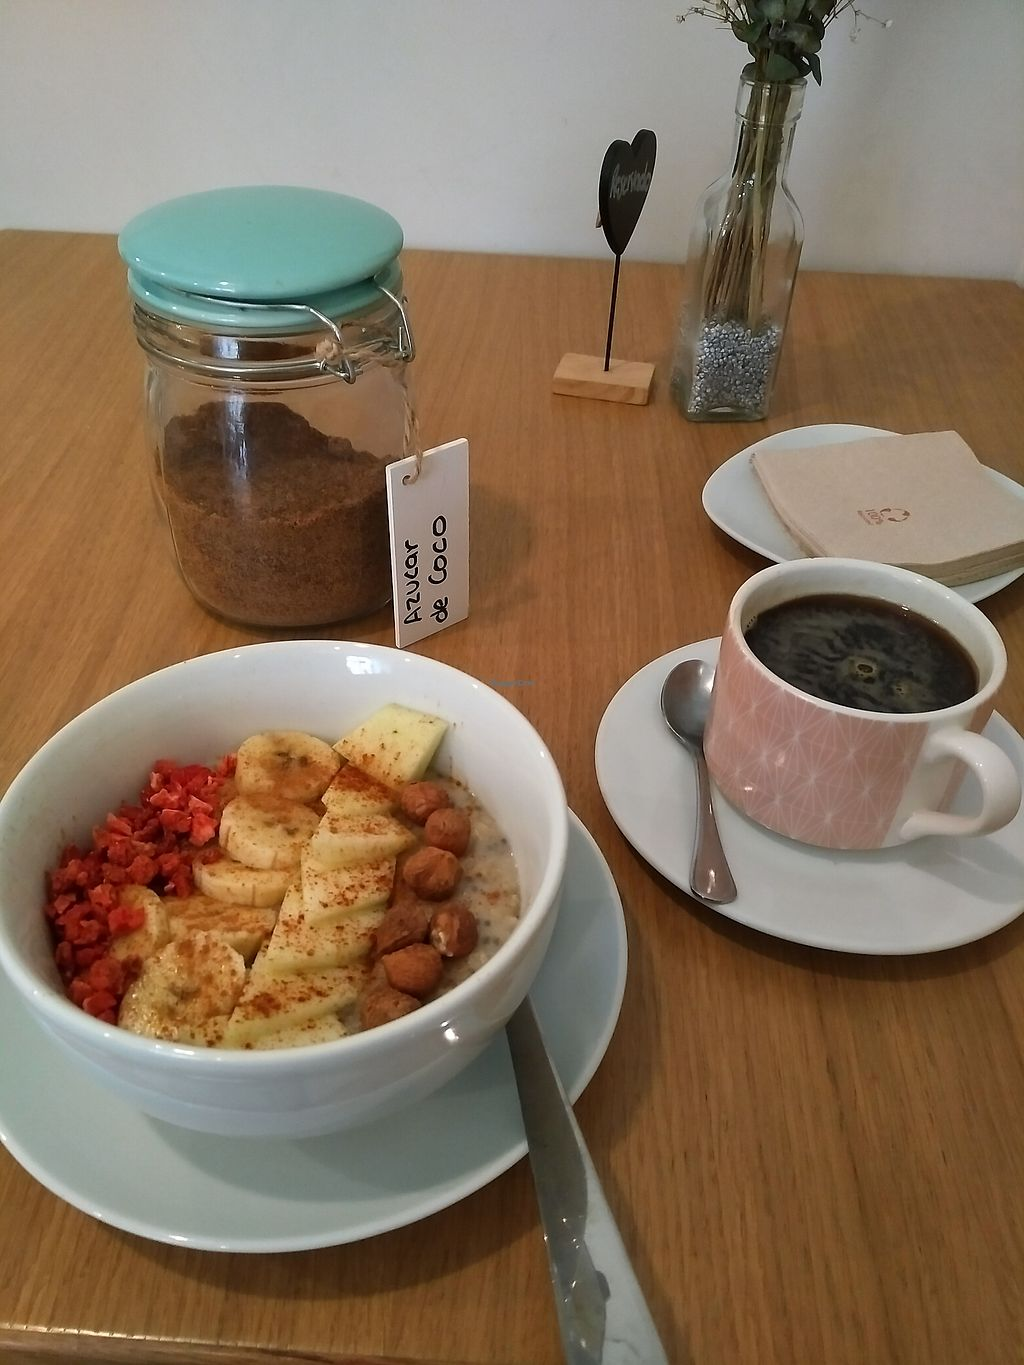 "Photo of Dellicare Cafe  by <a href=""/members/profile/Ryecatcher"">Ryecatcher</a> <br/>chia bowl with fruits and coffee <br/> July 11, 2017  - <a href='/contact/abuse/image/58696/278938'>Report</a>"